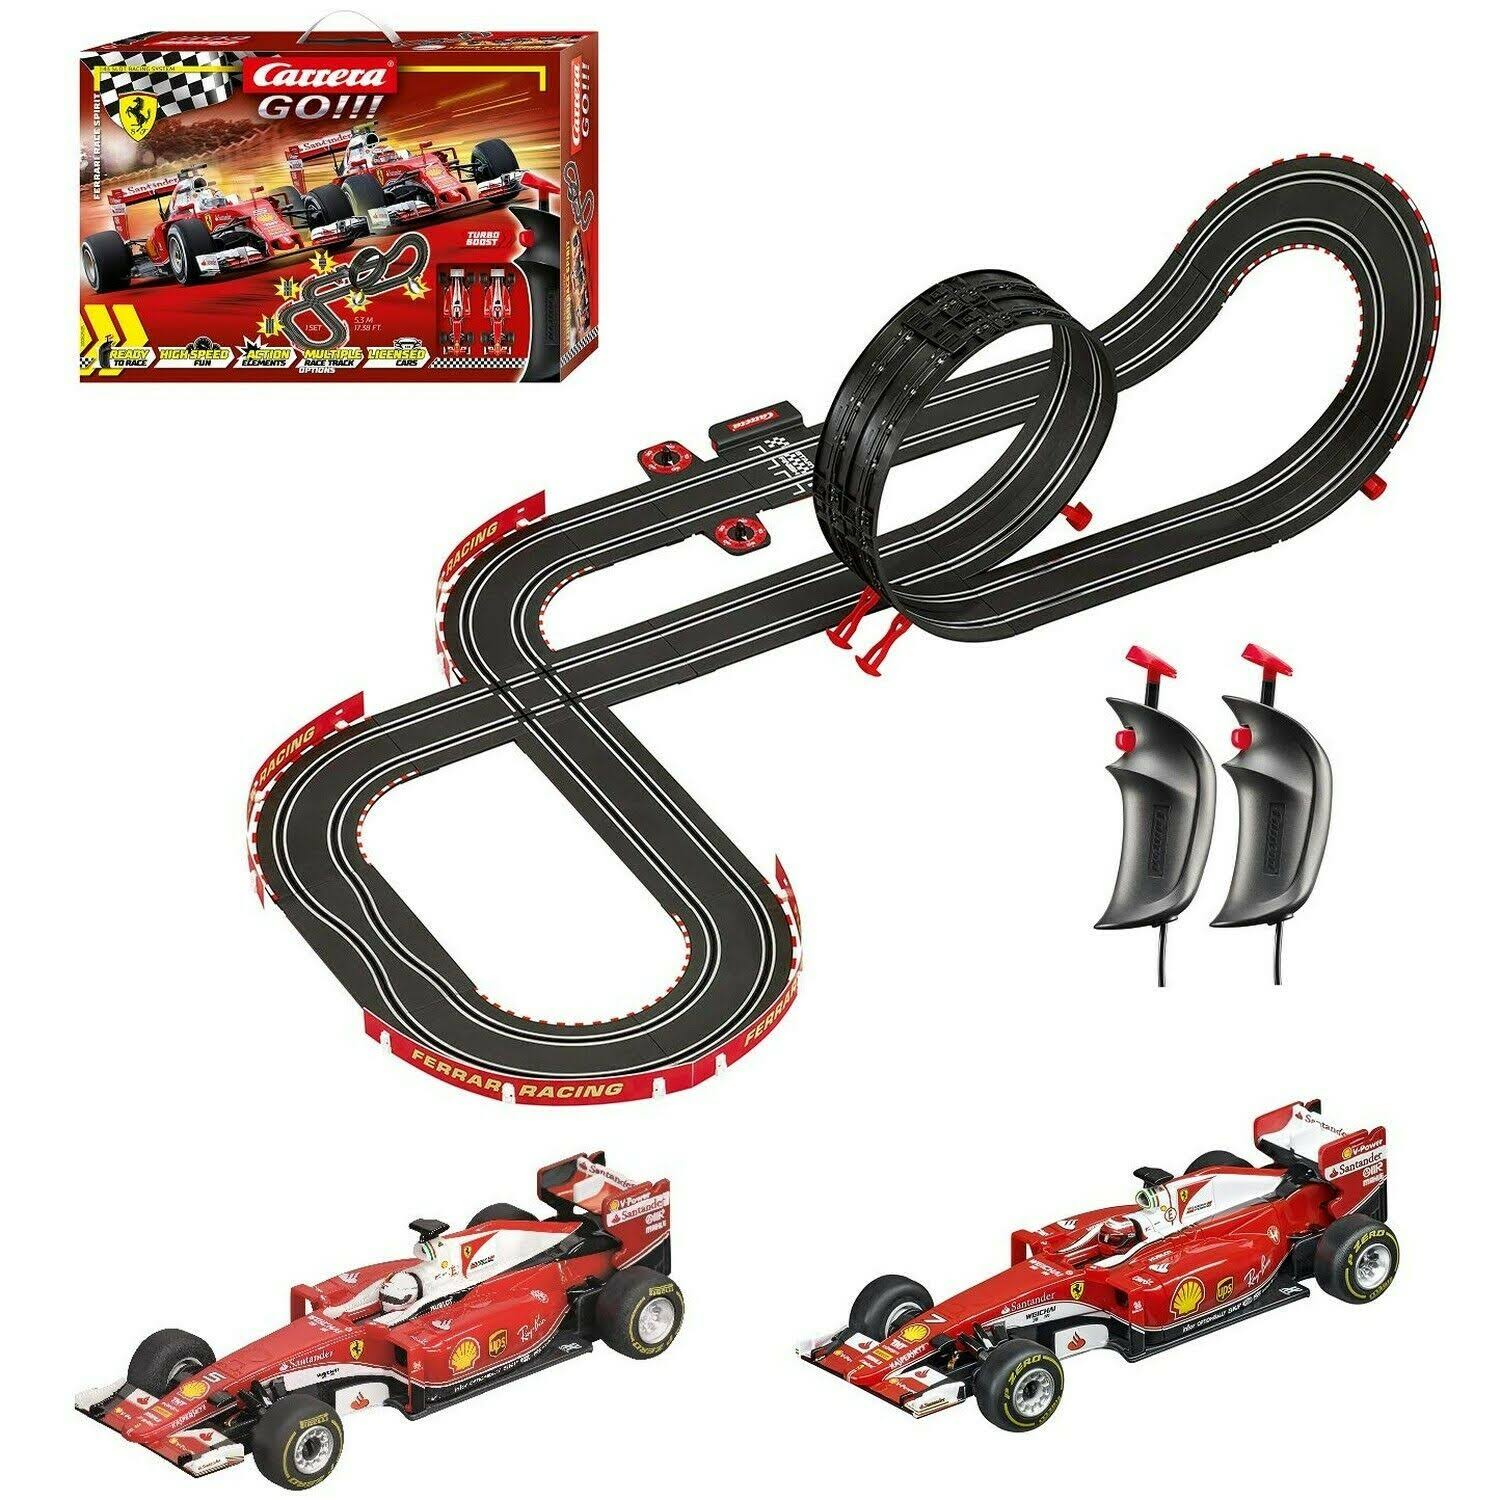 Carrera Go!!! 62505 Ferrari Race Spirit Electric Slot Car Racing Track Set System 1:43 Scale